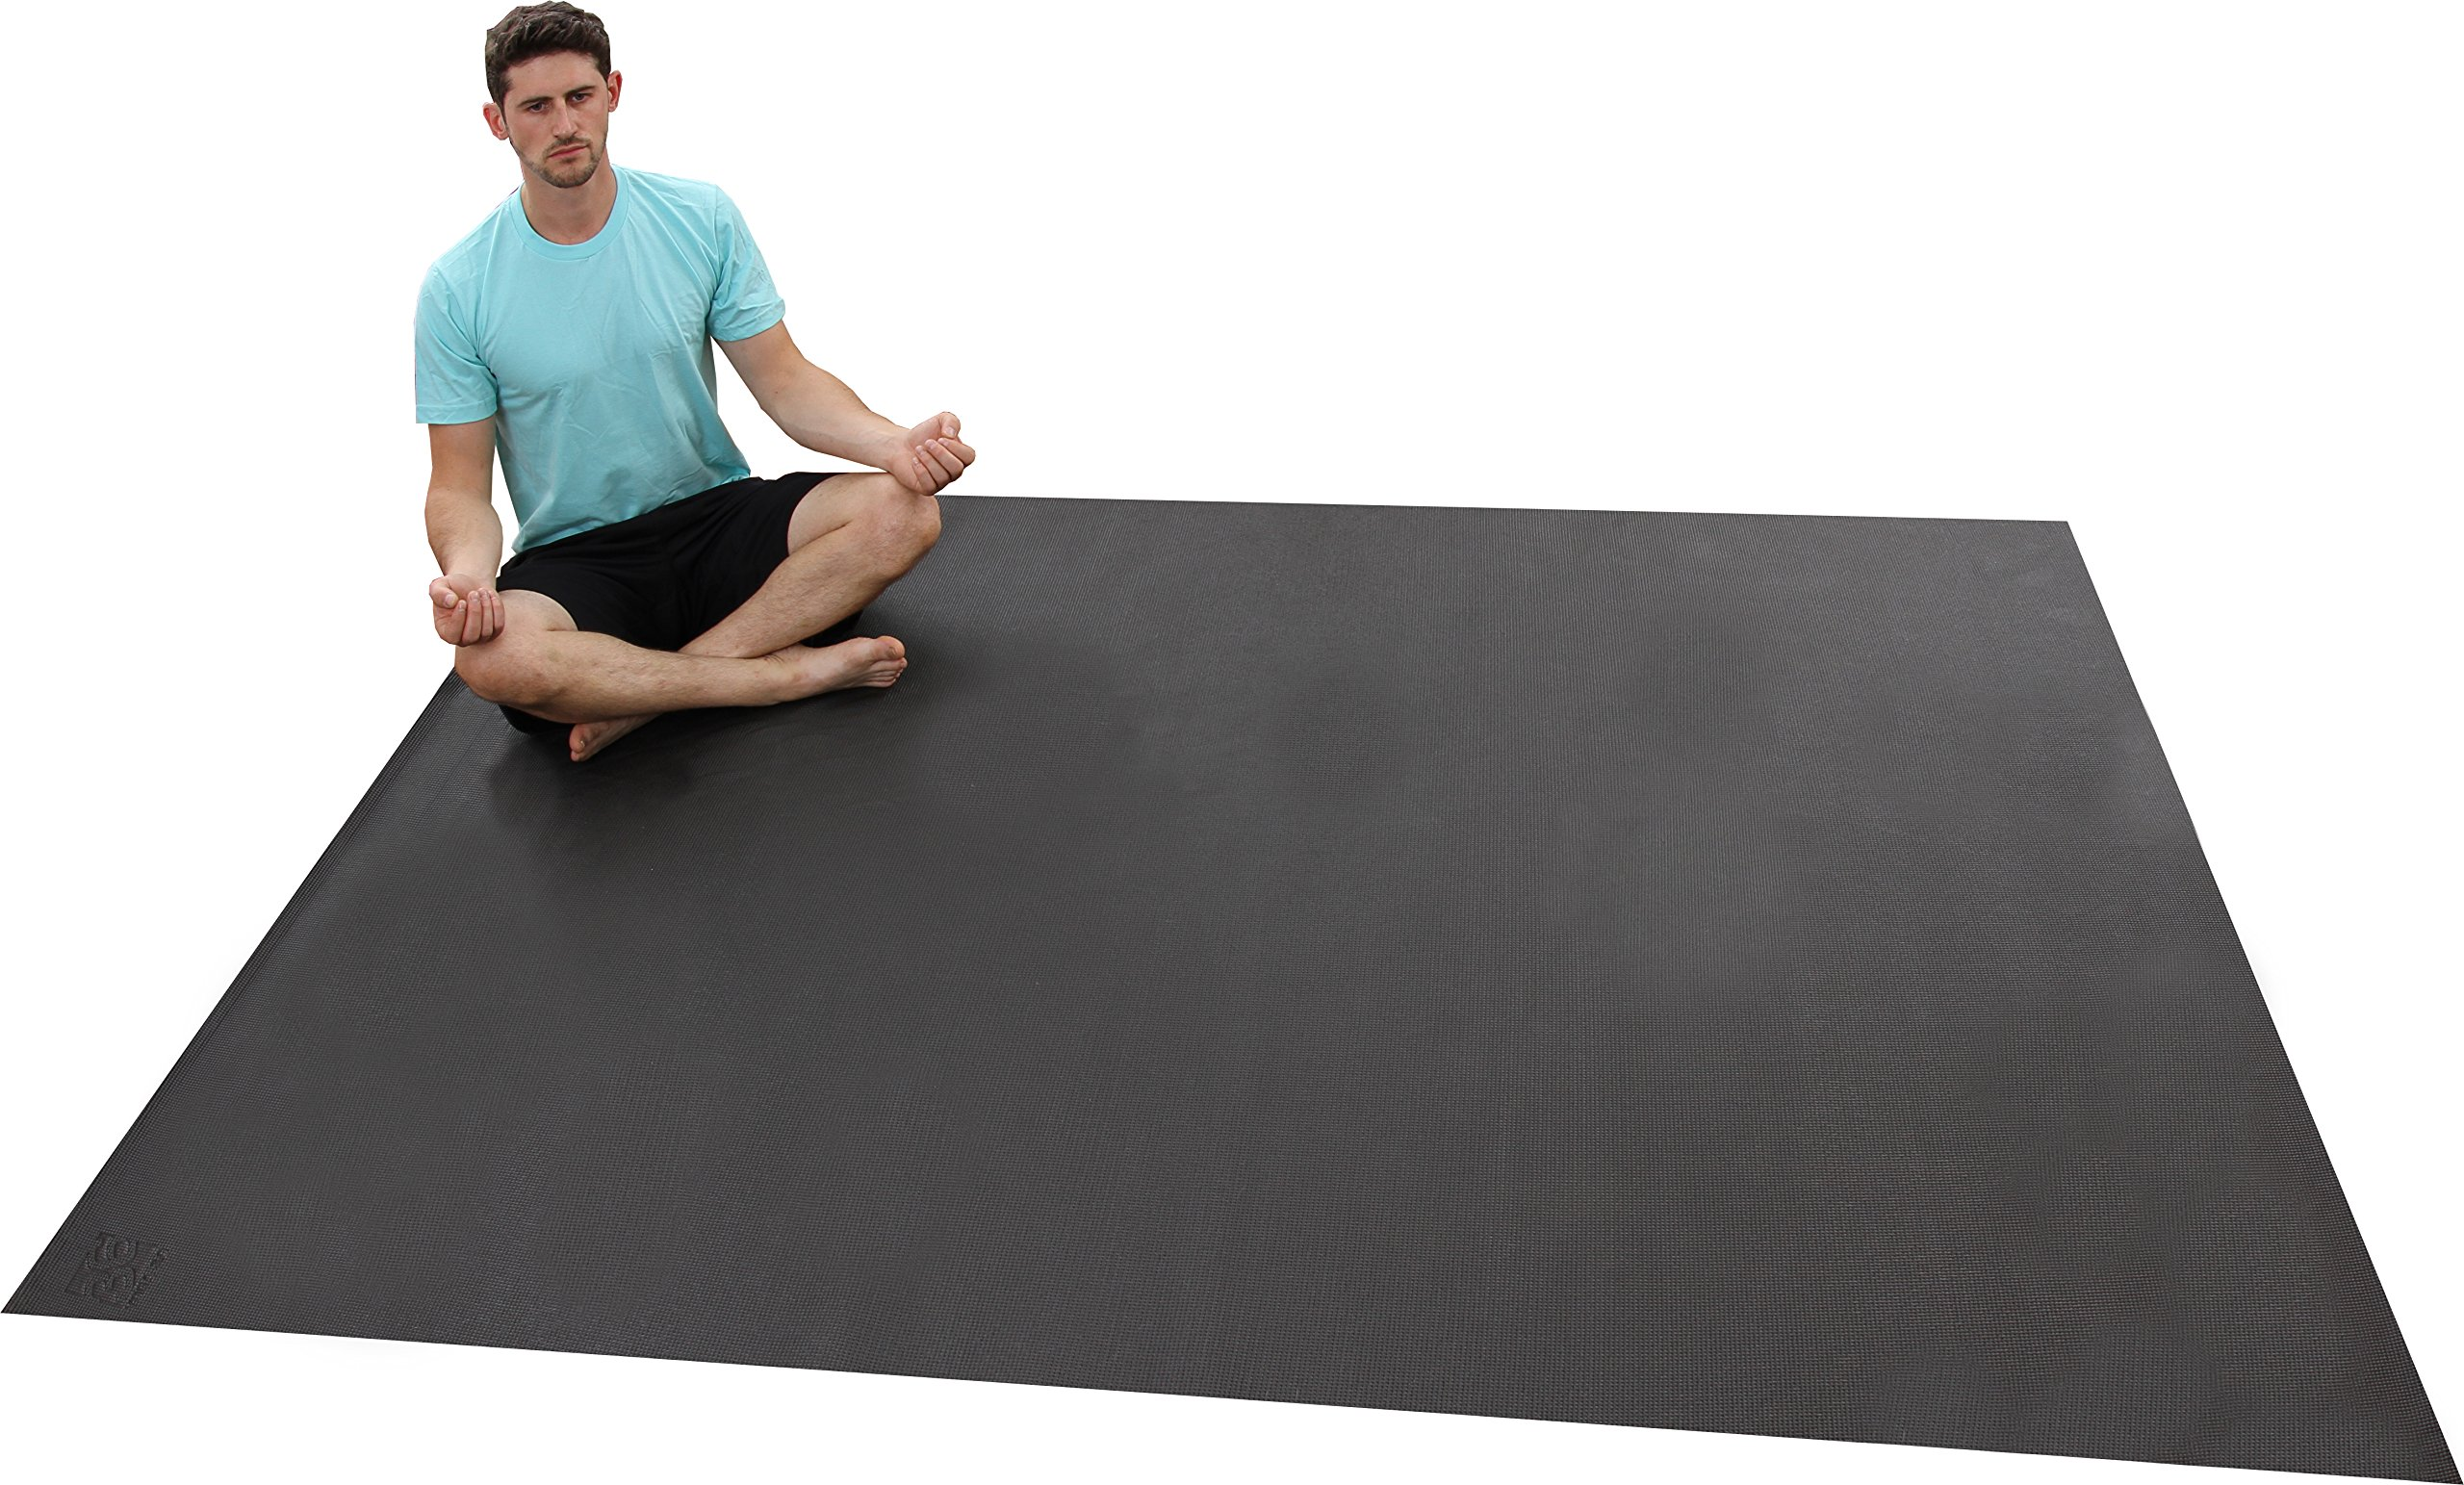 The Largest YOGA Mat Available. 8 Ft x 6 Ft x 6mm Thick. Ideal For Home Yoga Studios. Made From The Highest Grade Premium Non-Toxic Materials. Designed for Home-based Yoga, Stretching, Or Meditation. by Square36 (Image #4)